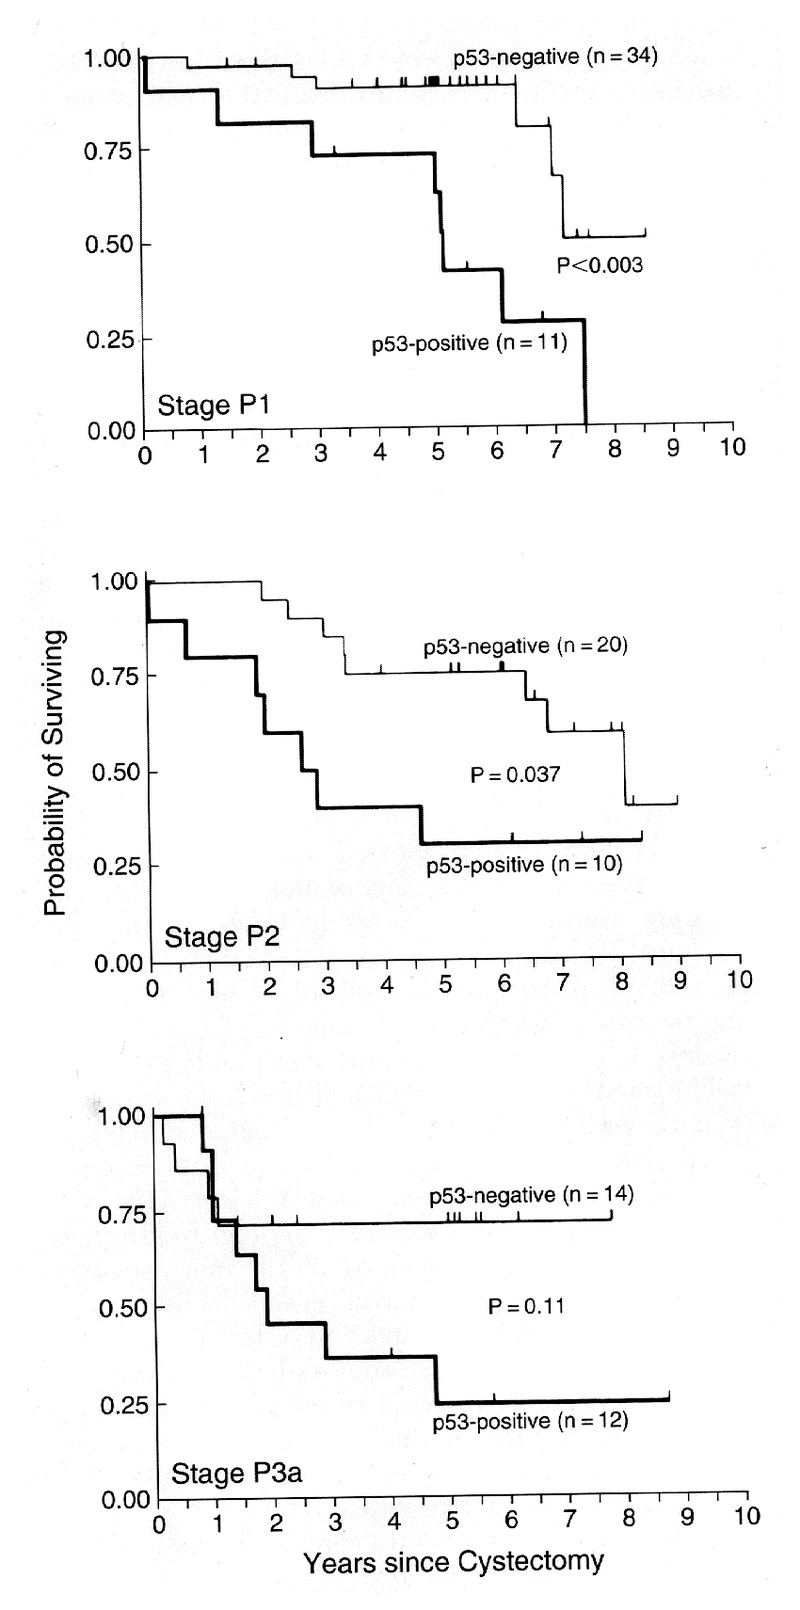 Accumulation of Nuclear p53 and Tumor Progression in Bladder